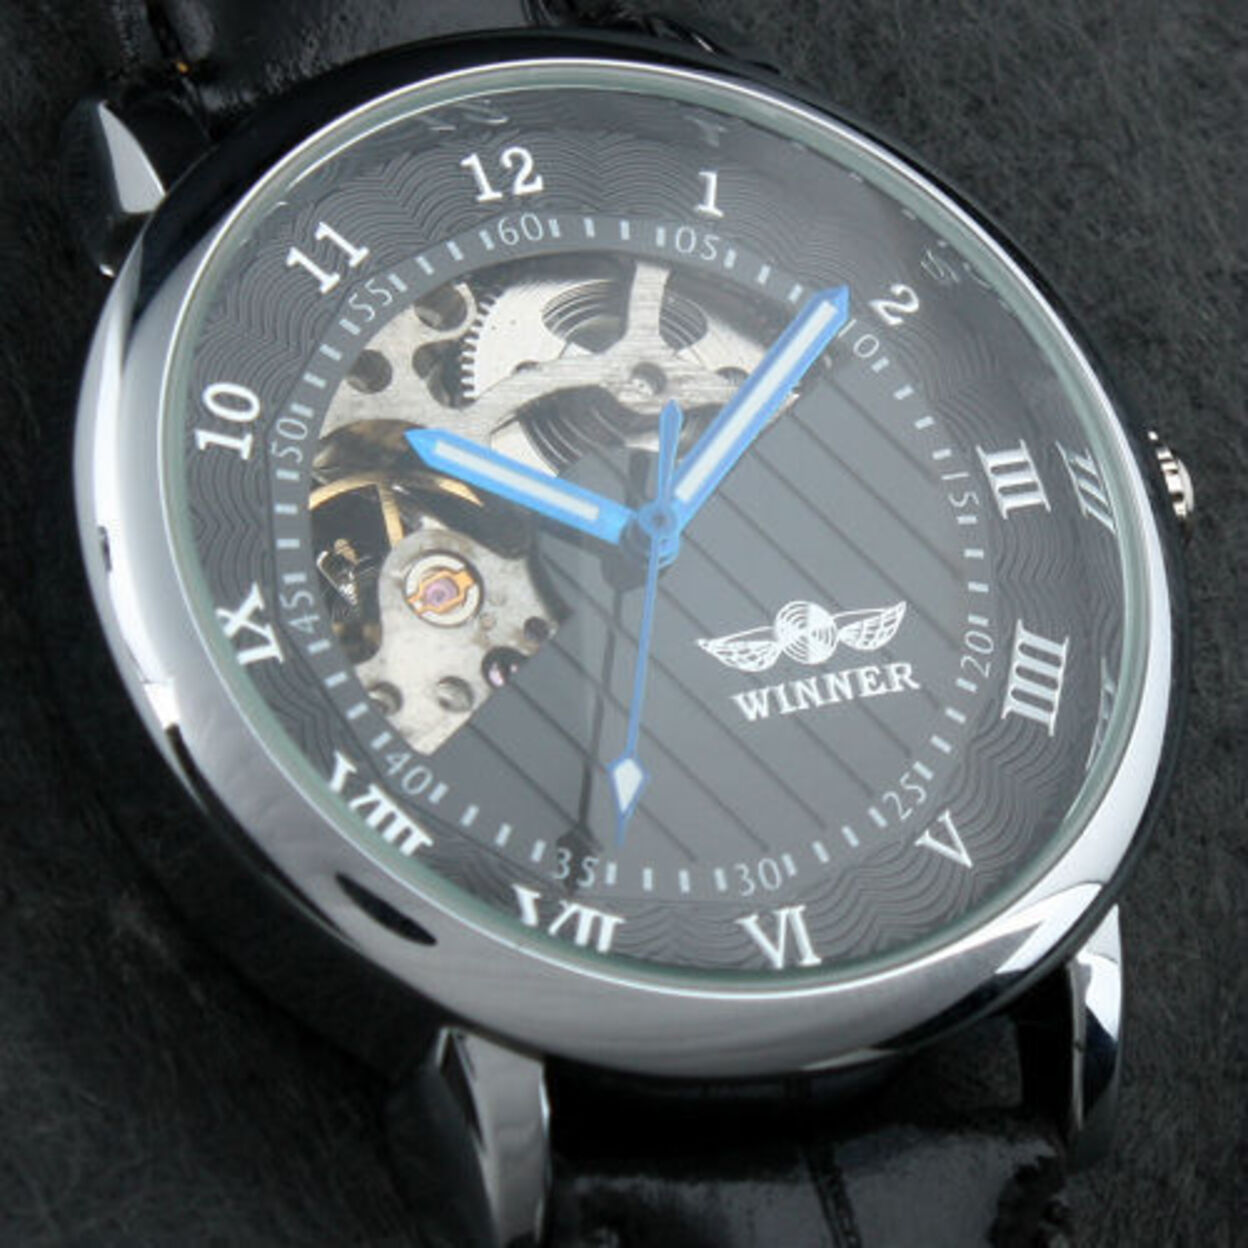 Sophisticated In Black Mechanical Skeleton Automatic Watch For Men 546fca98503d6feb21000207